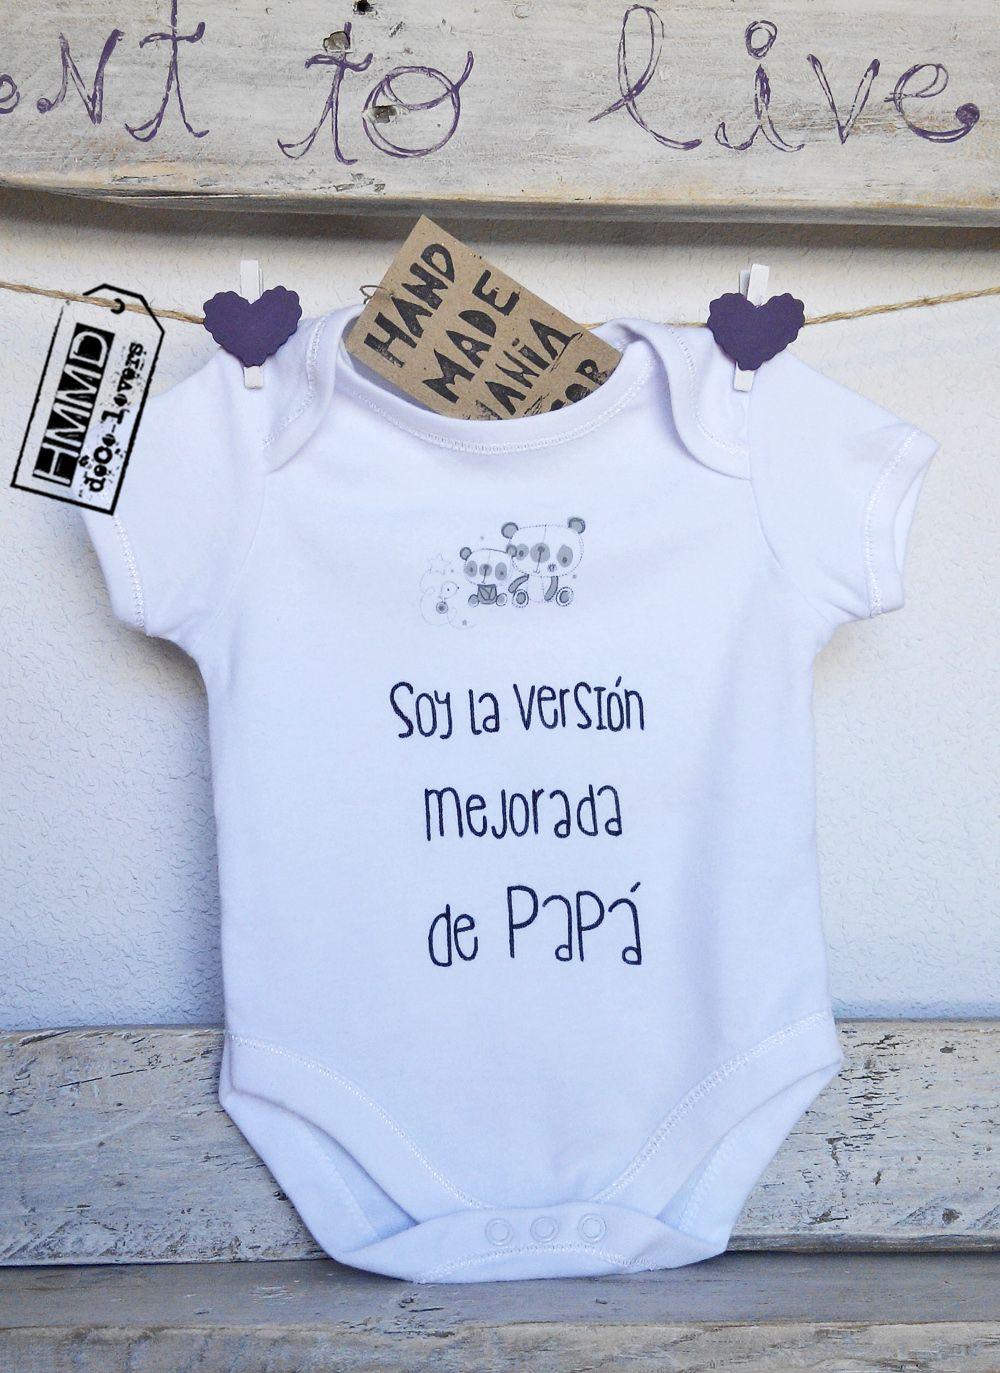 Nuevos bodies y camisetas hmmd new hmmd body suits and t - Regalos para padres y madres ...